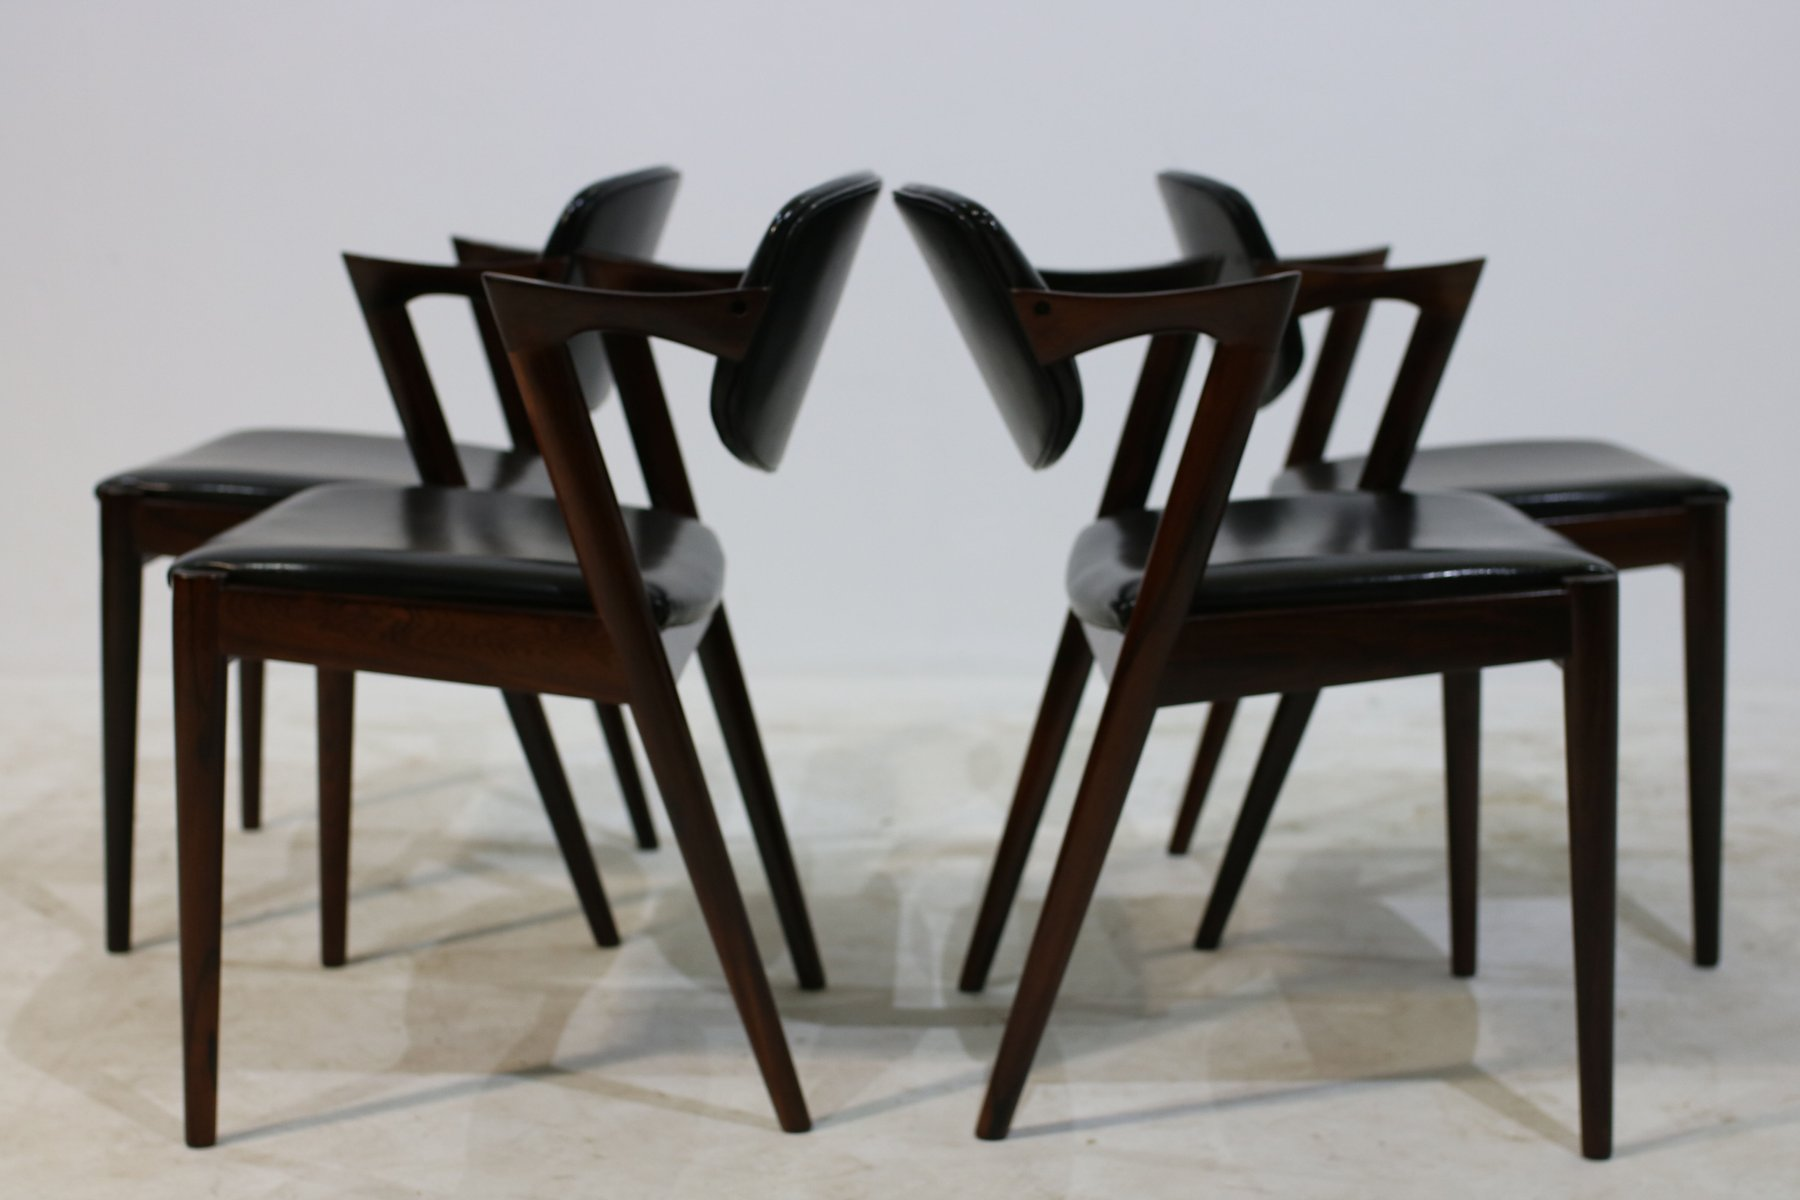 Mid century model 42 rosewood chairs by kai kristiansen set of 4 for sale at pamono - Kai kristiansen chairs ...